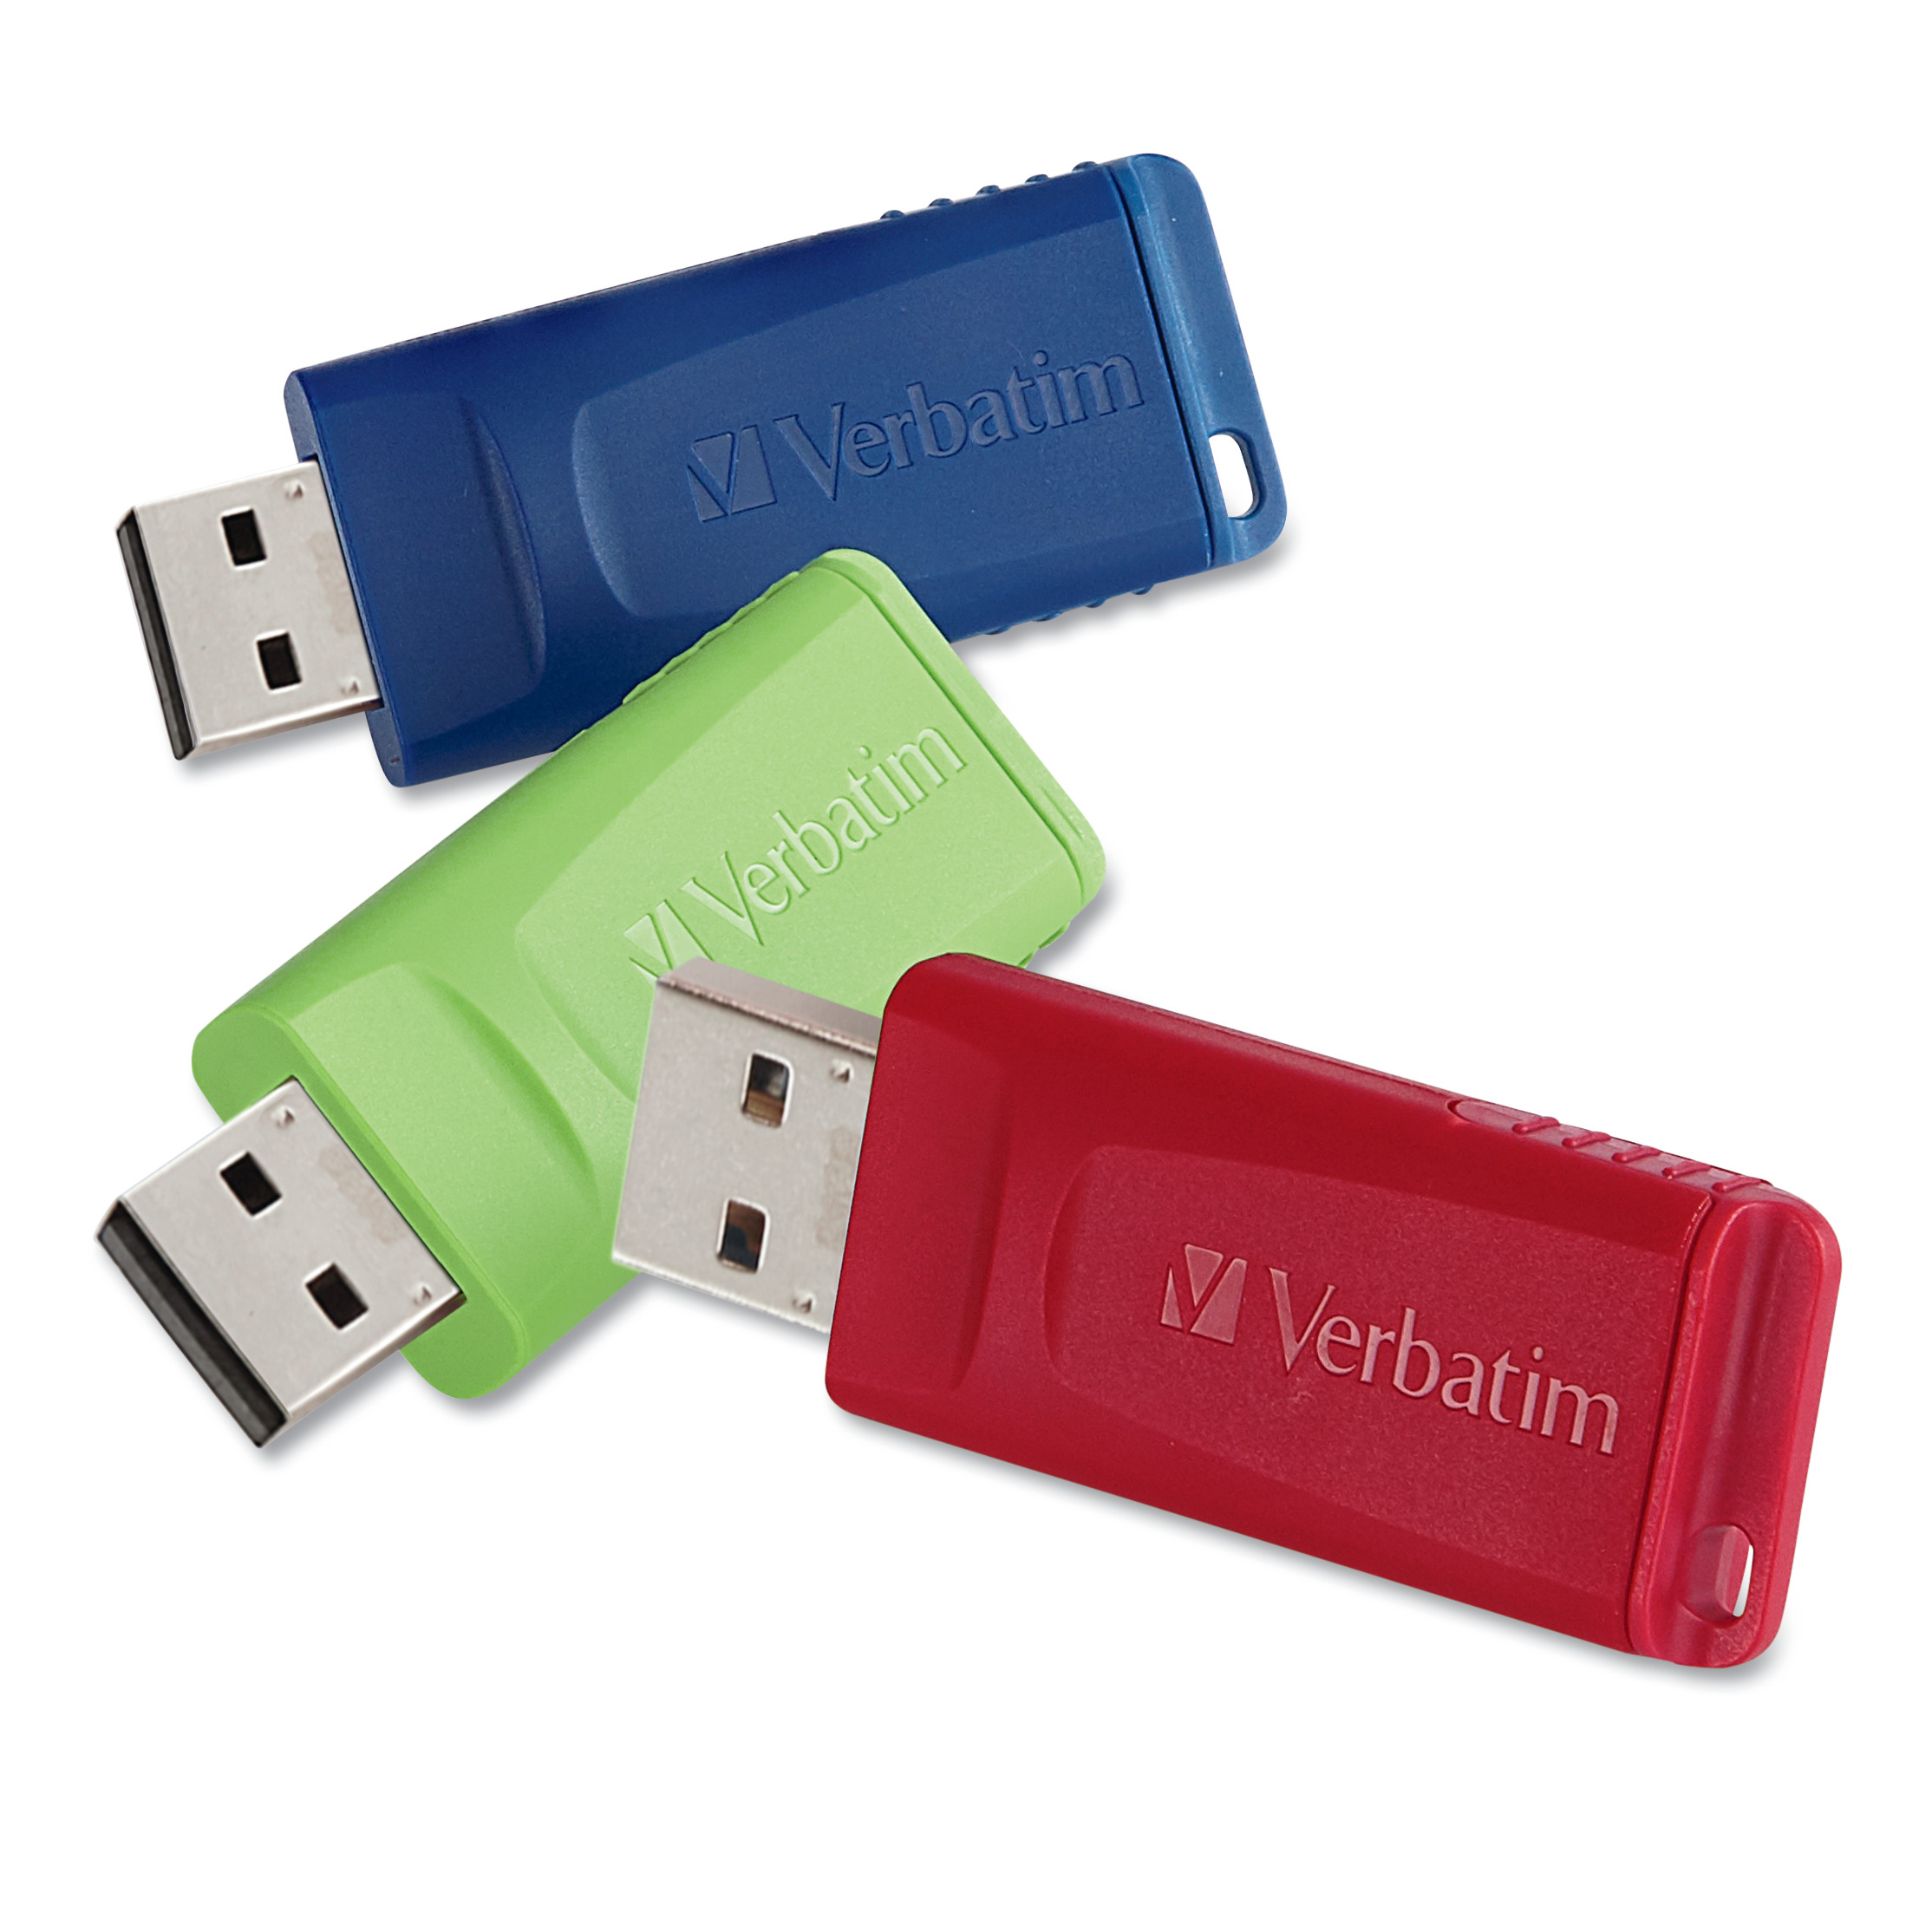 Verbatim Store 'n' Go USB 2.0 Flash Drive, 8GB, Blue/Green/Red, 3/Pack -VER98703